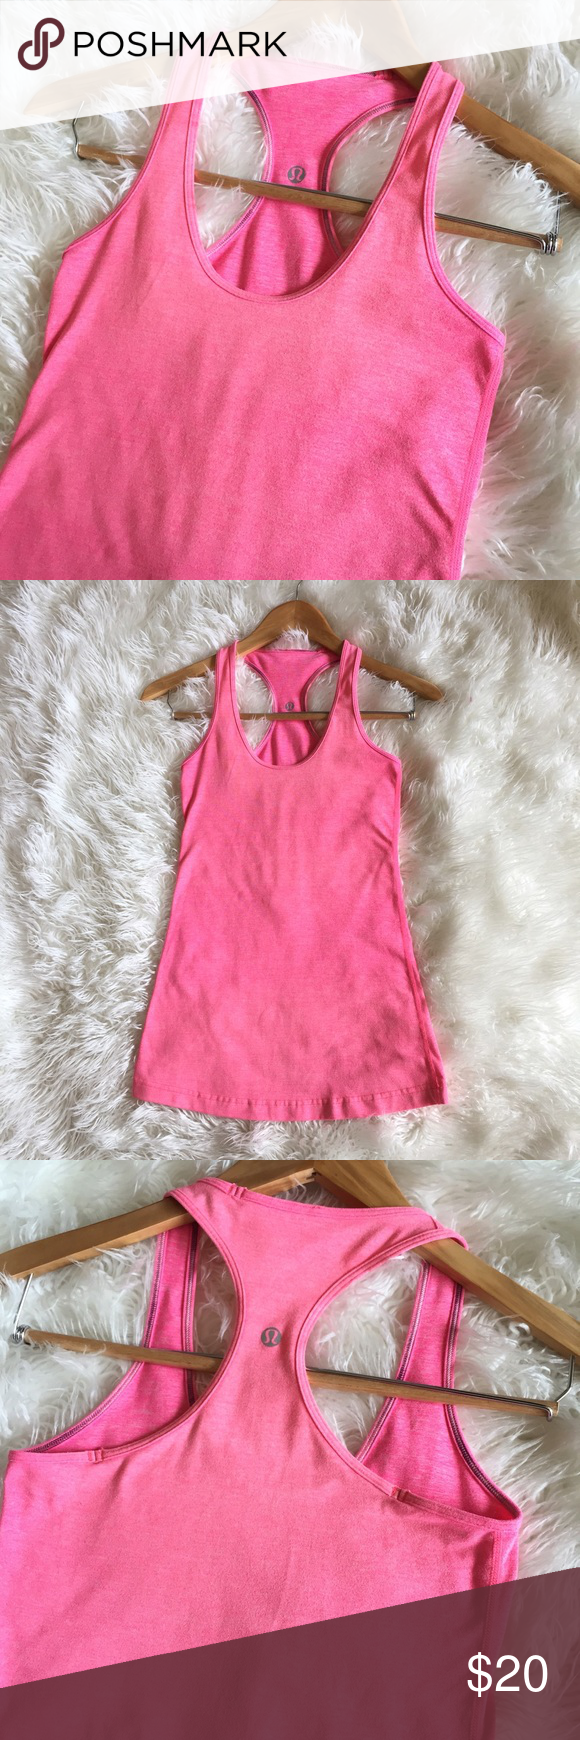 Lululemon athletica racer back tank top This tank top is in great condition! No marks or stains. Non-smoking pet free home. lululemon athletica Tops Tank Tops